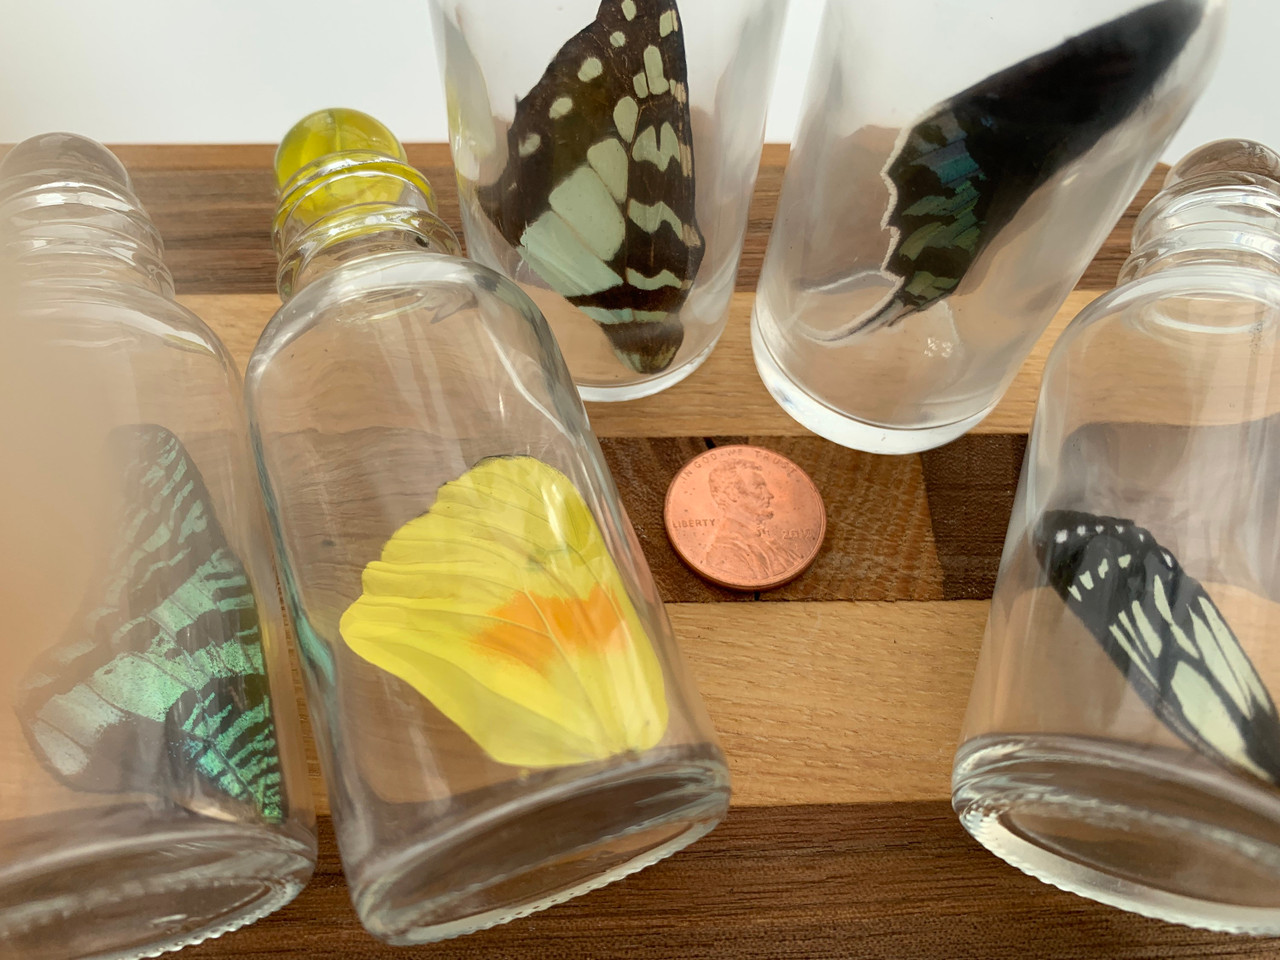 Hippie Decor Bottled Butterfly Wing Boho Decor Real Butterfly Wing Wings in a Jar Magical Keepsake Magical Fairy Wing Jarred Fairy